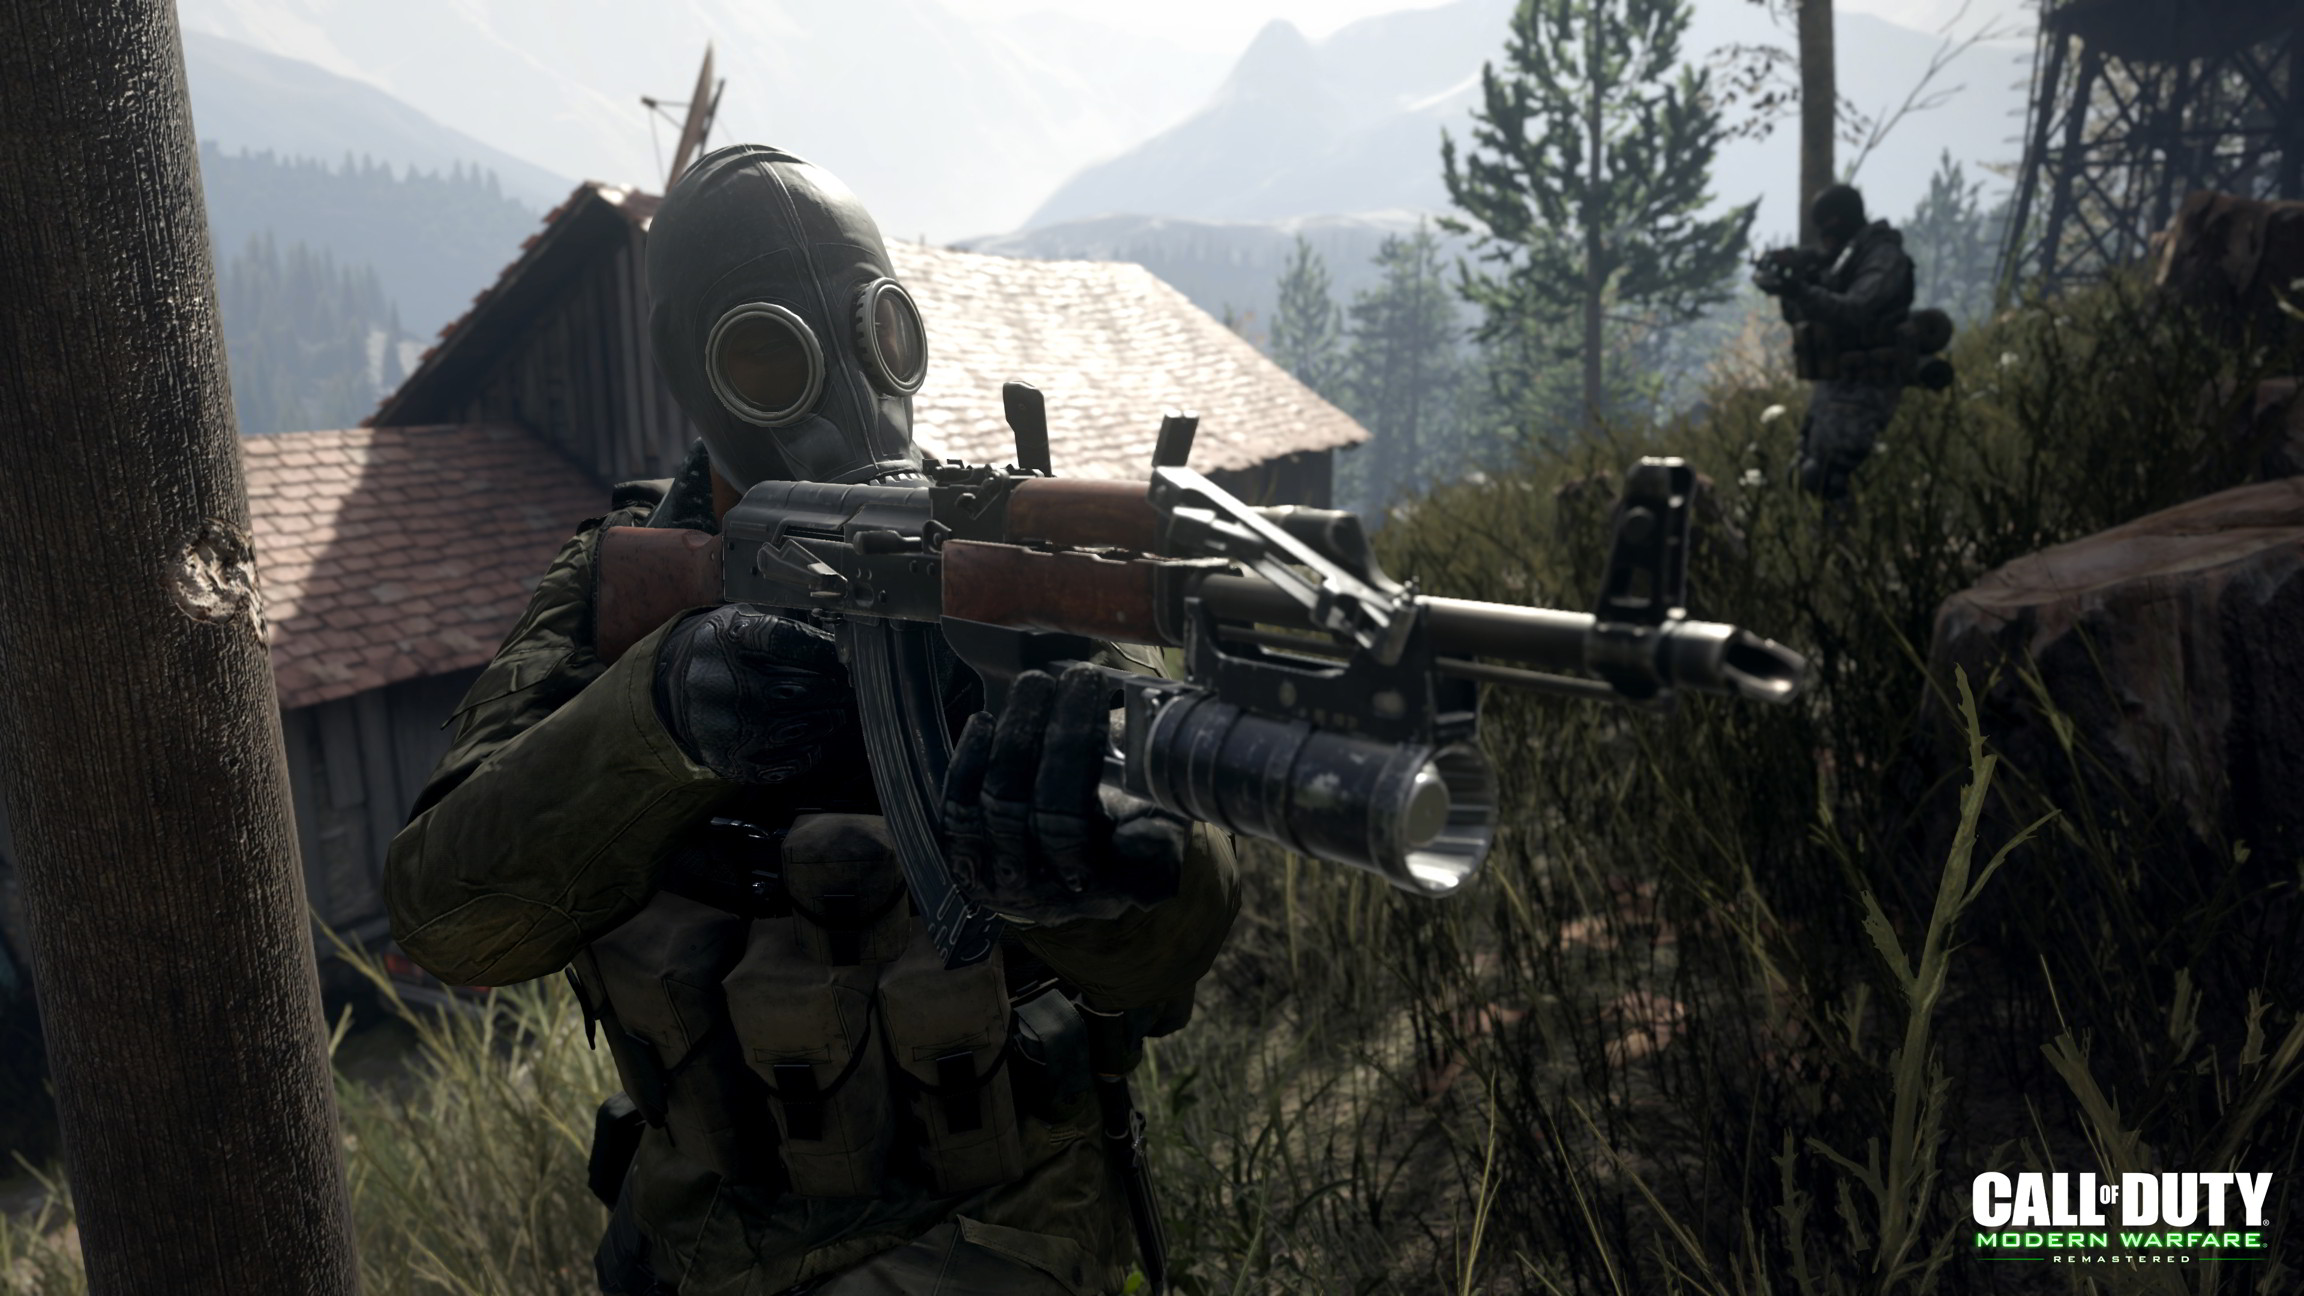 Kampania Call of Duty: Modern Warfare Remastered już dostępna na PlayStation 4